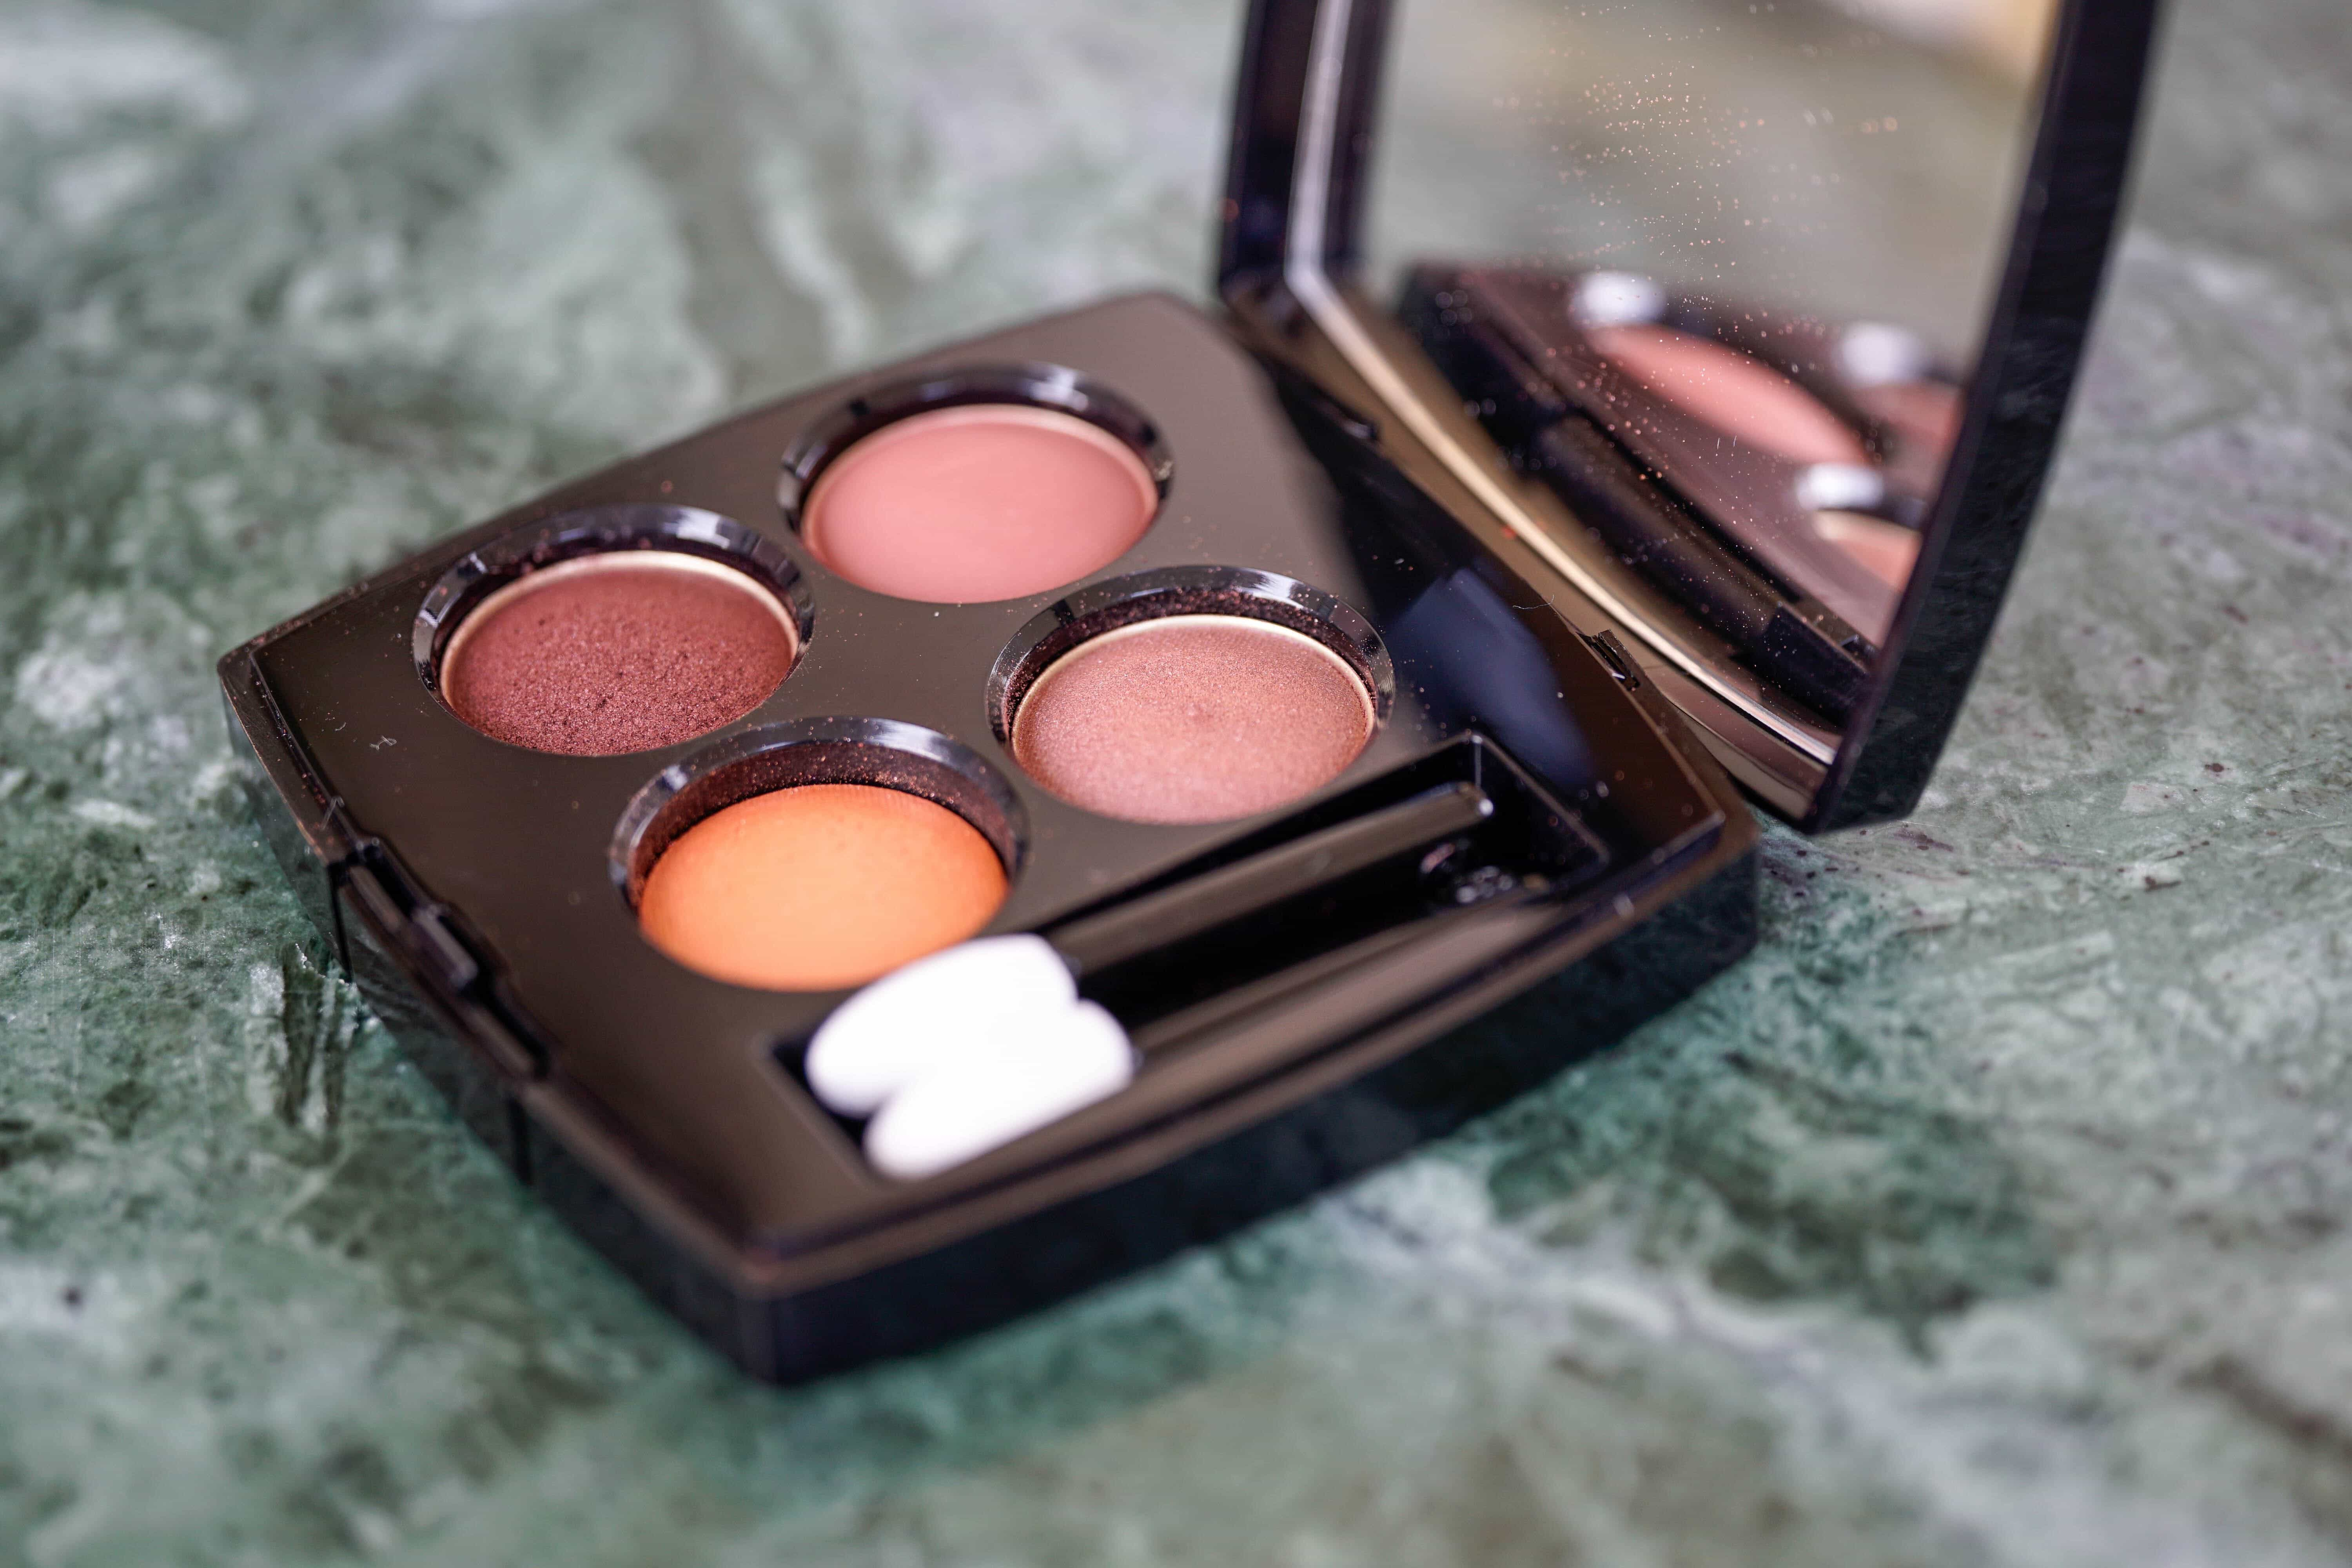 CHANEL BEAUTY – SPRING SUMMER 2020 | Sachini